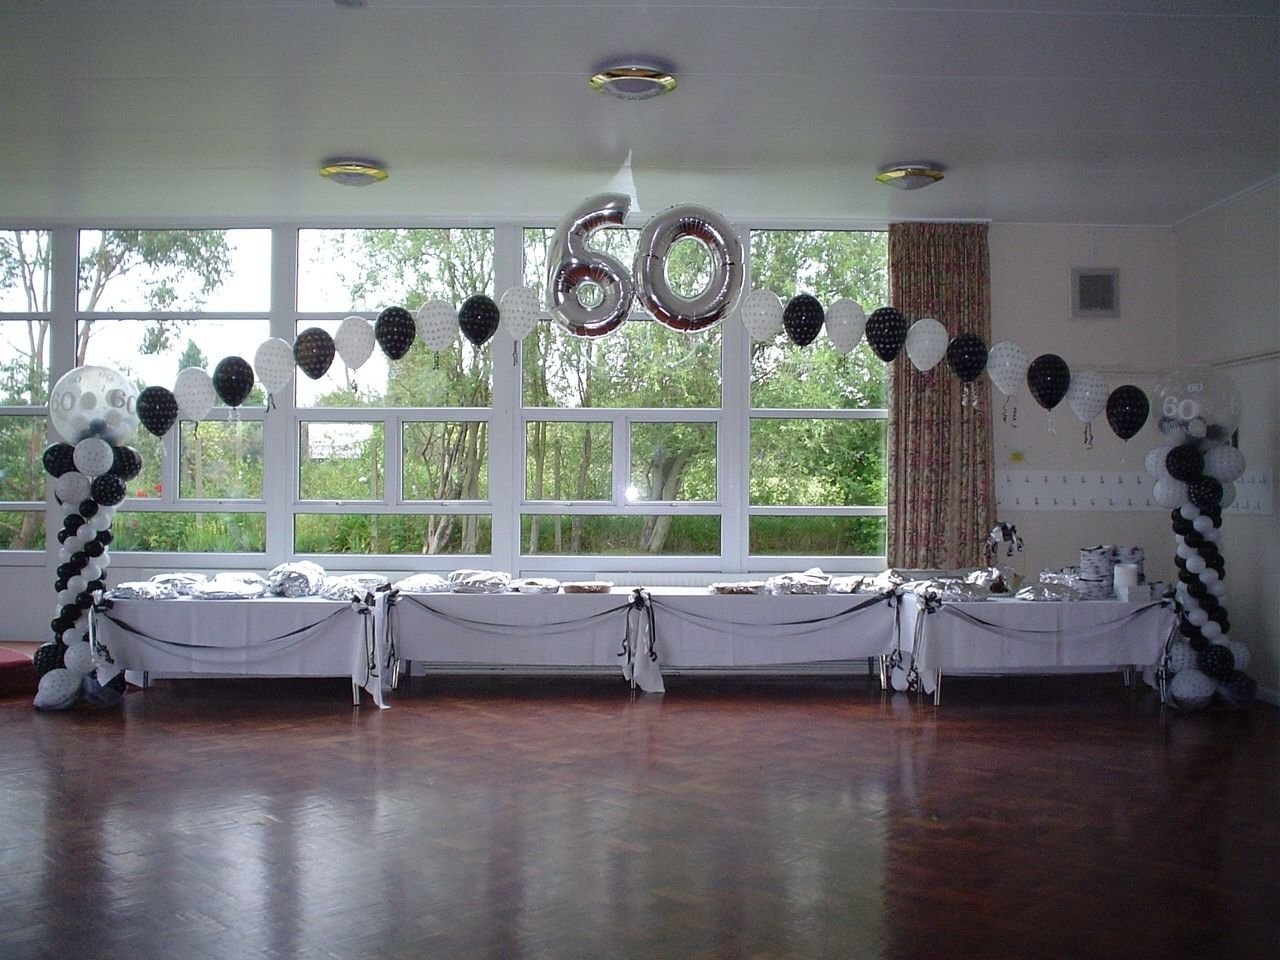 10 Ideal Surprise 60Th Birthday Party Ideas surprise 60th birthday party ideas pinteres 2020